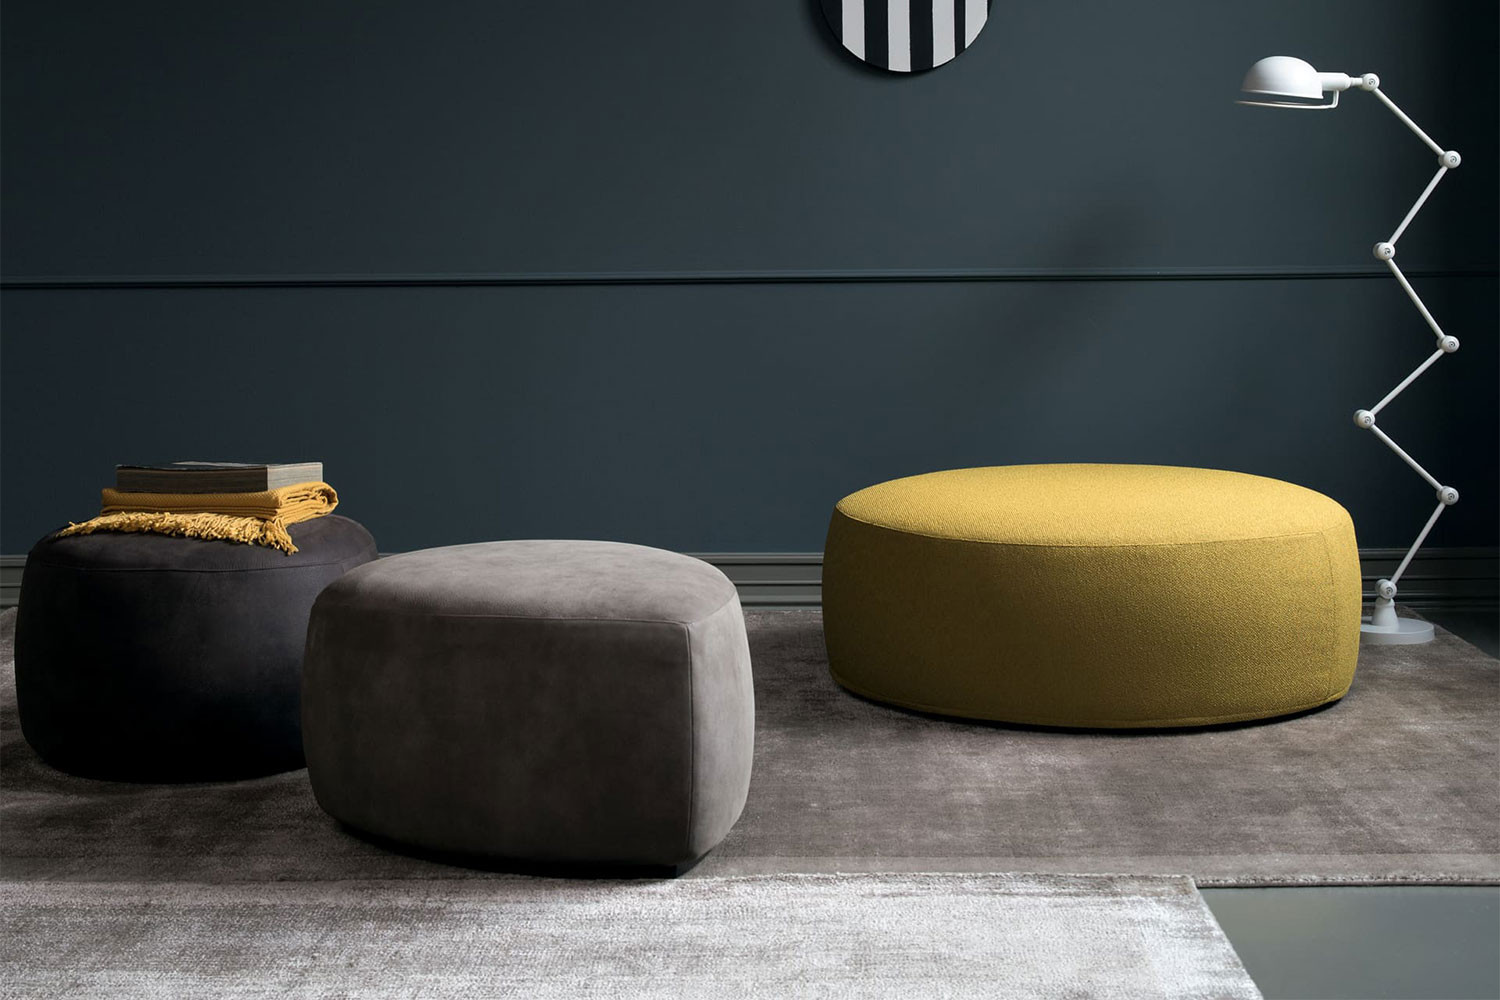 Contemporary, minimalist upholstered pouffes with a low wooden plinth base